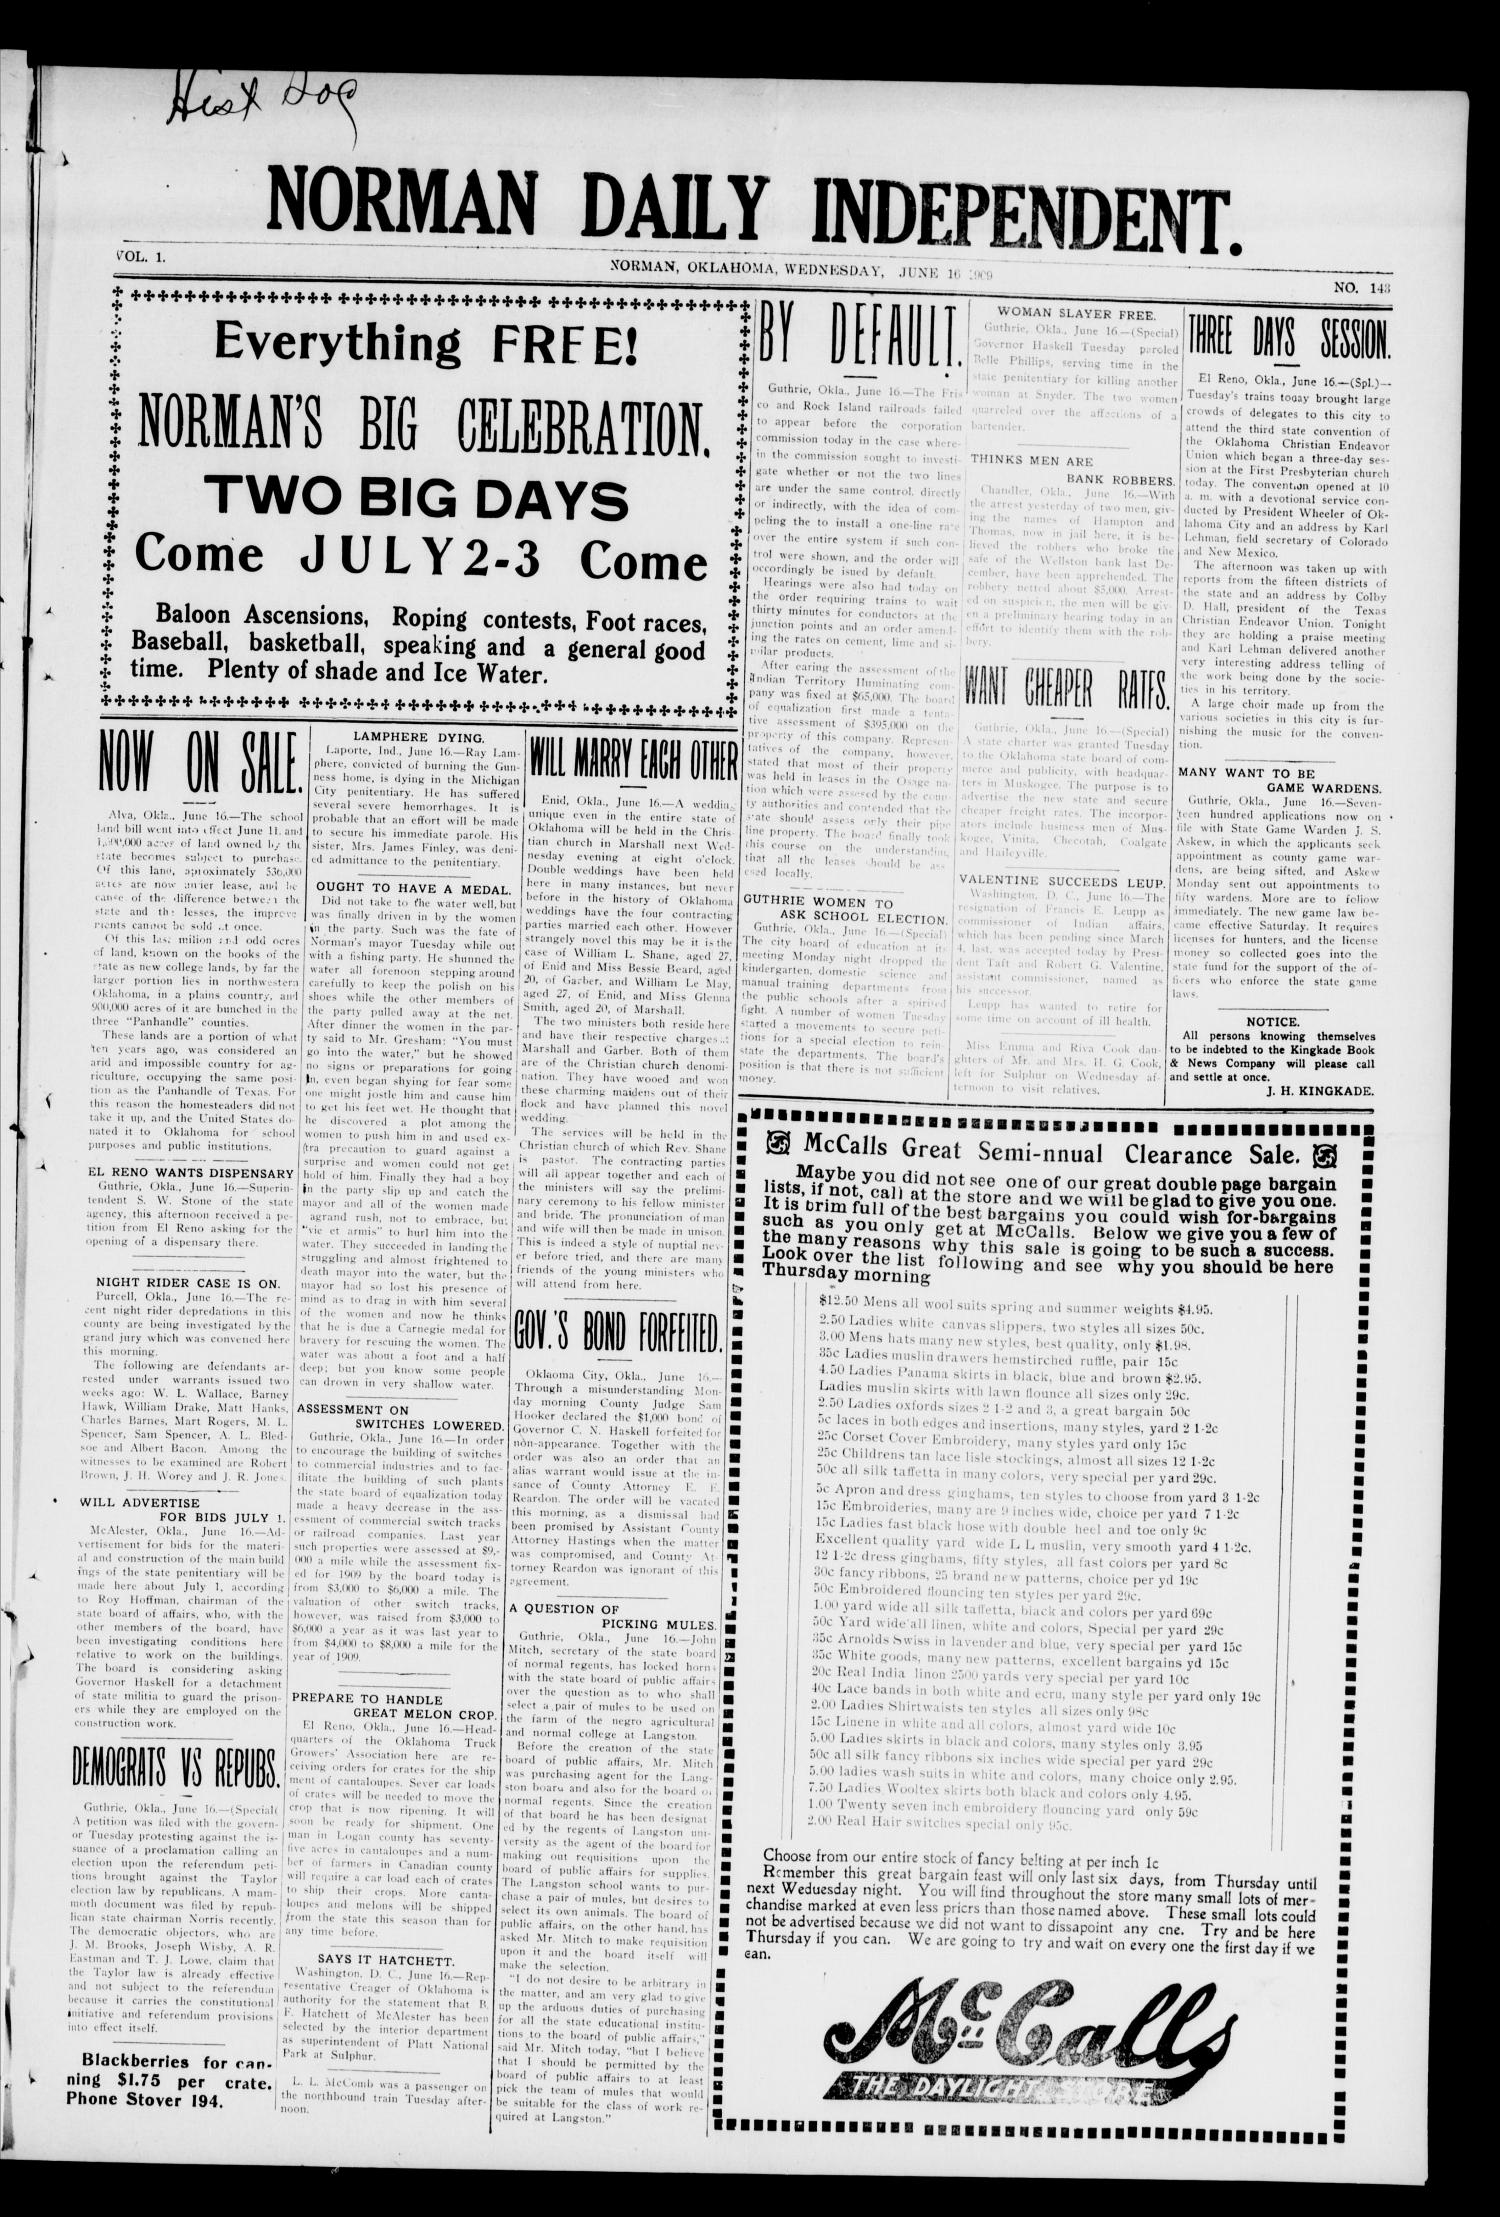 Norman Daily Independent. (Norman, Okla.), Vol. 1, No. 143, Ed. 1 Wednesday, June 16, 1909                                                                                                      [Sequence #]: 1 of 4